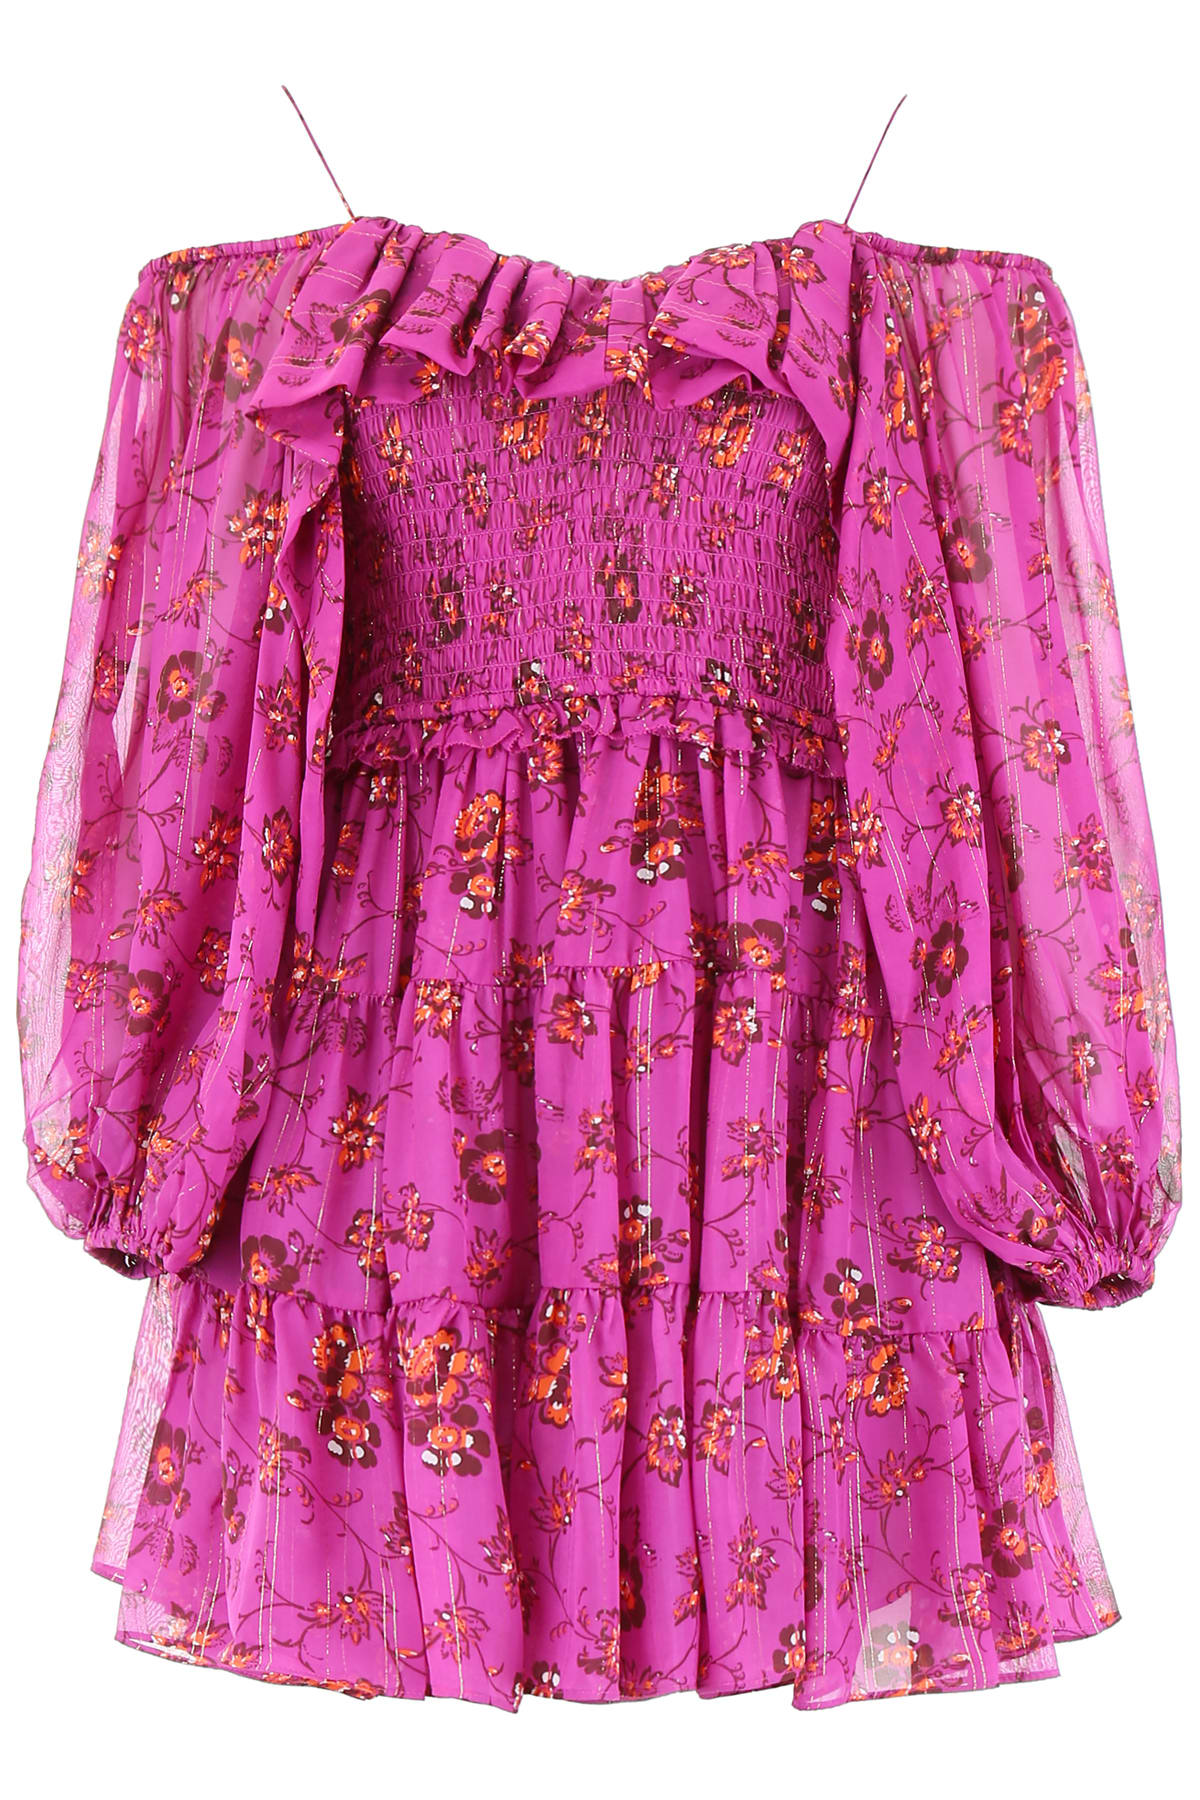 Ulla Johnson Monet Mini Dress